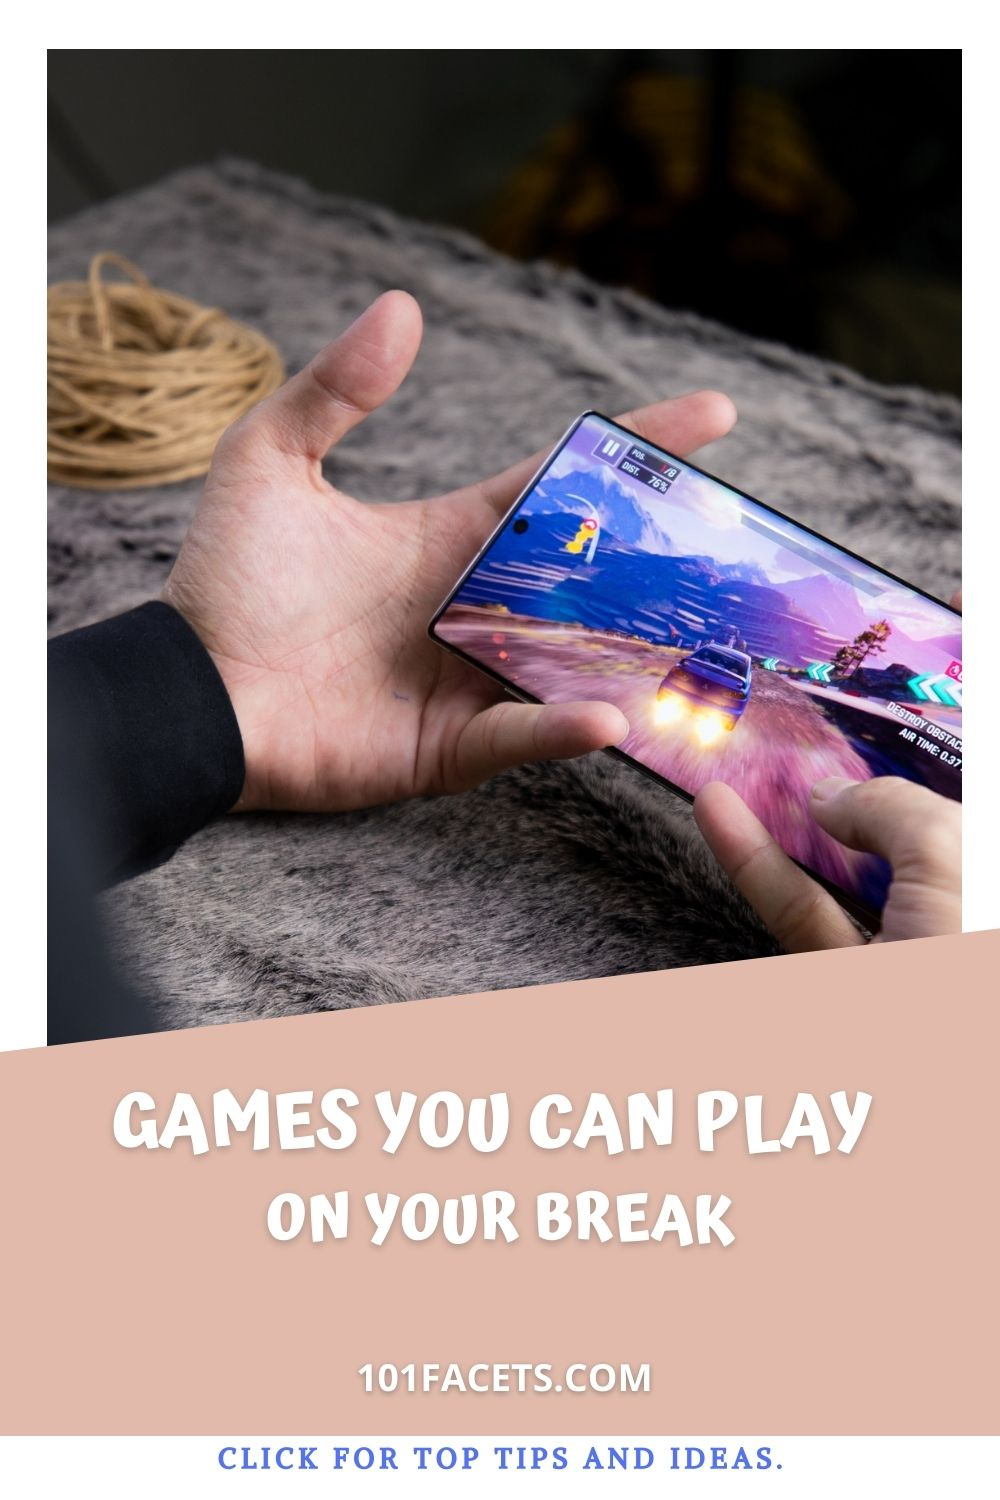 Games You Can Play on Your Break While Working at Home